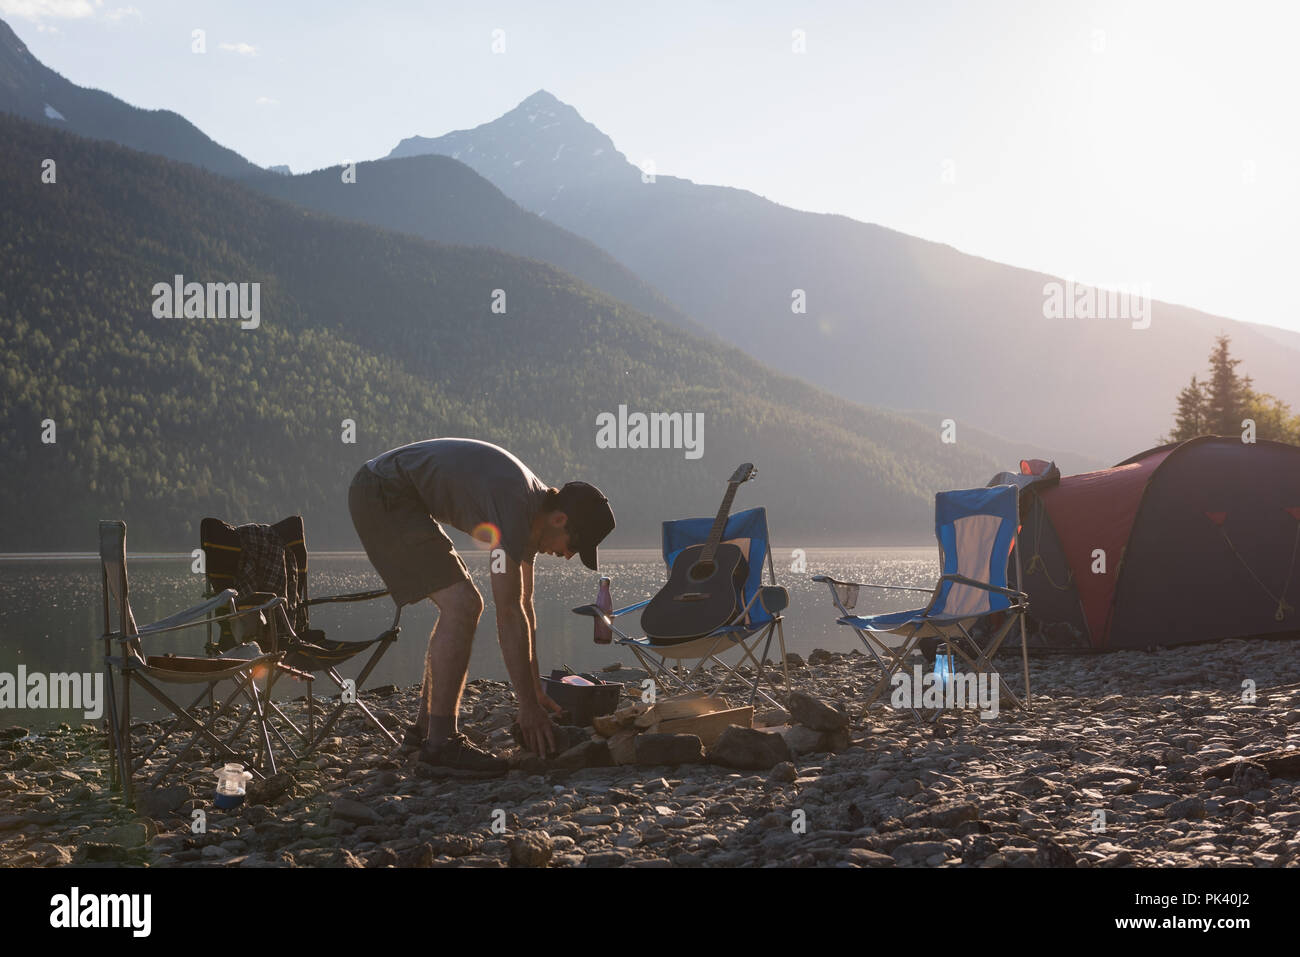 Man making preparation for campfire - Stock Image